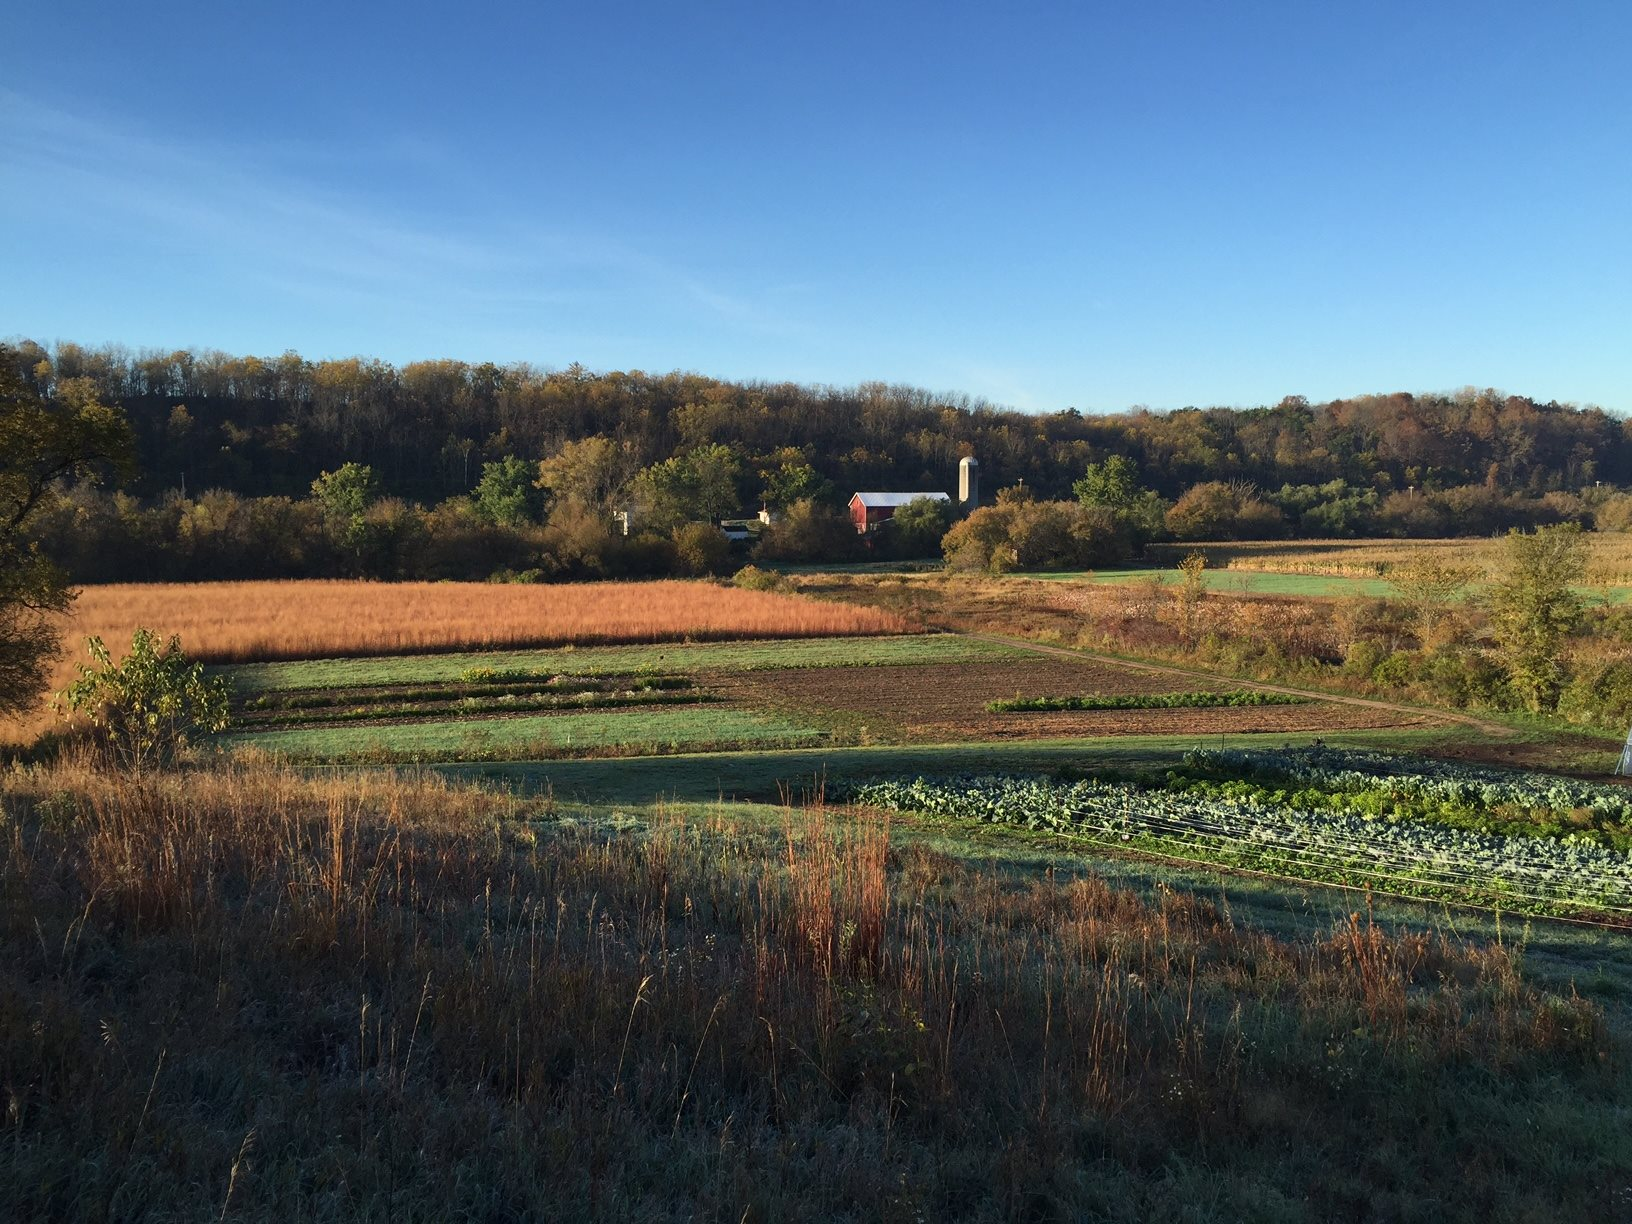 Some of the diversity on the farm - the prairie remnant and restored prairie, produce fields, and wetland